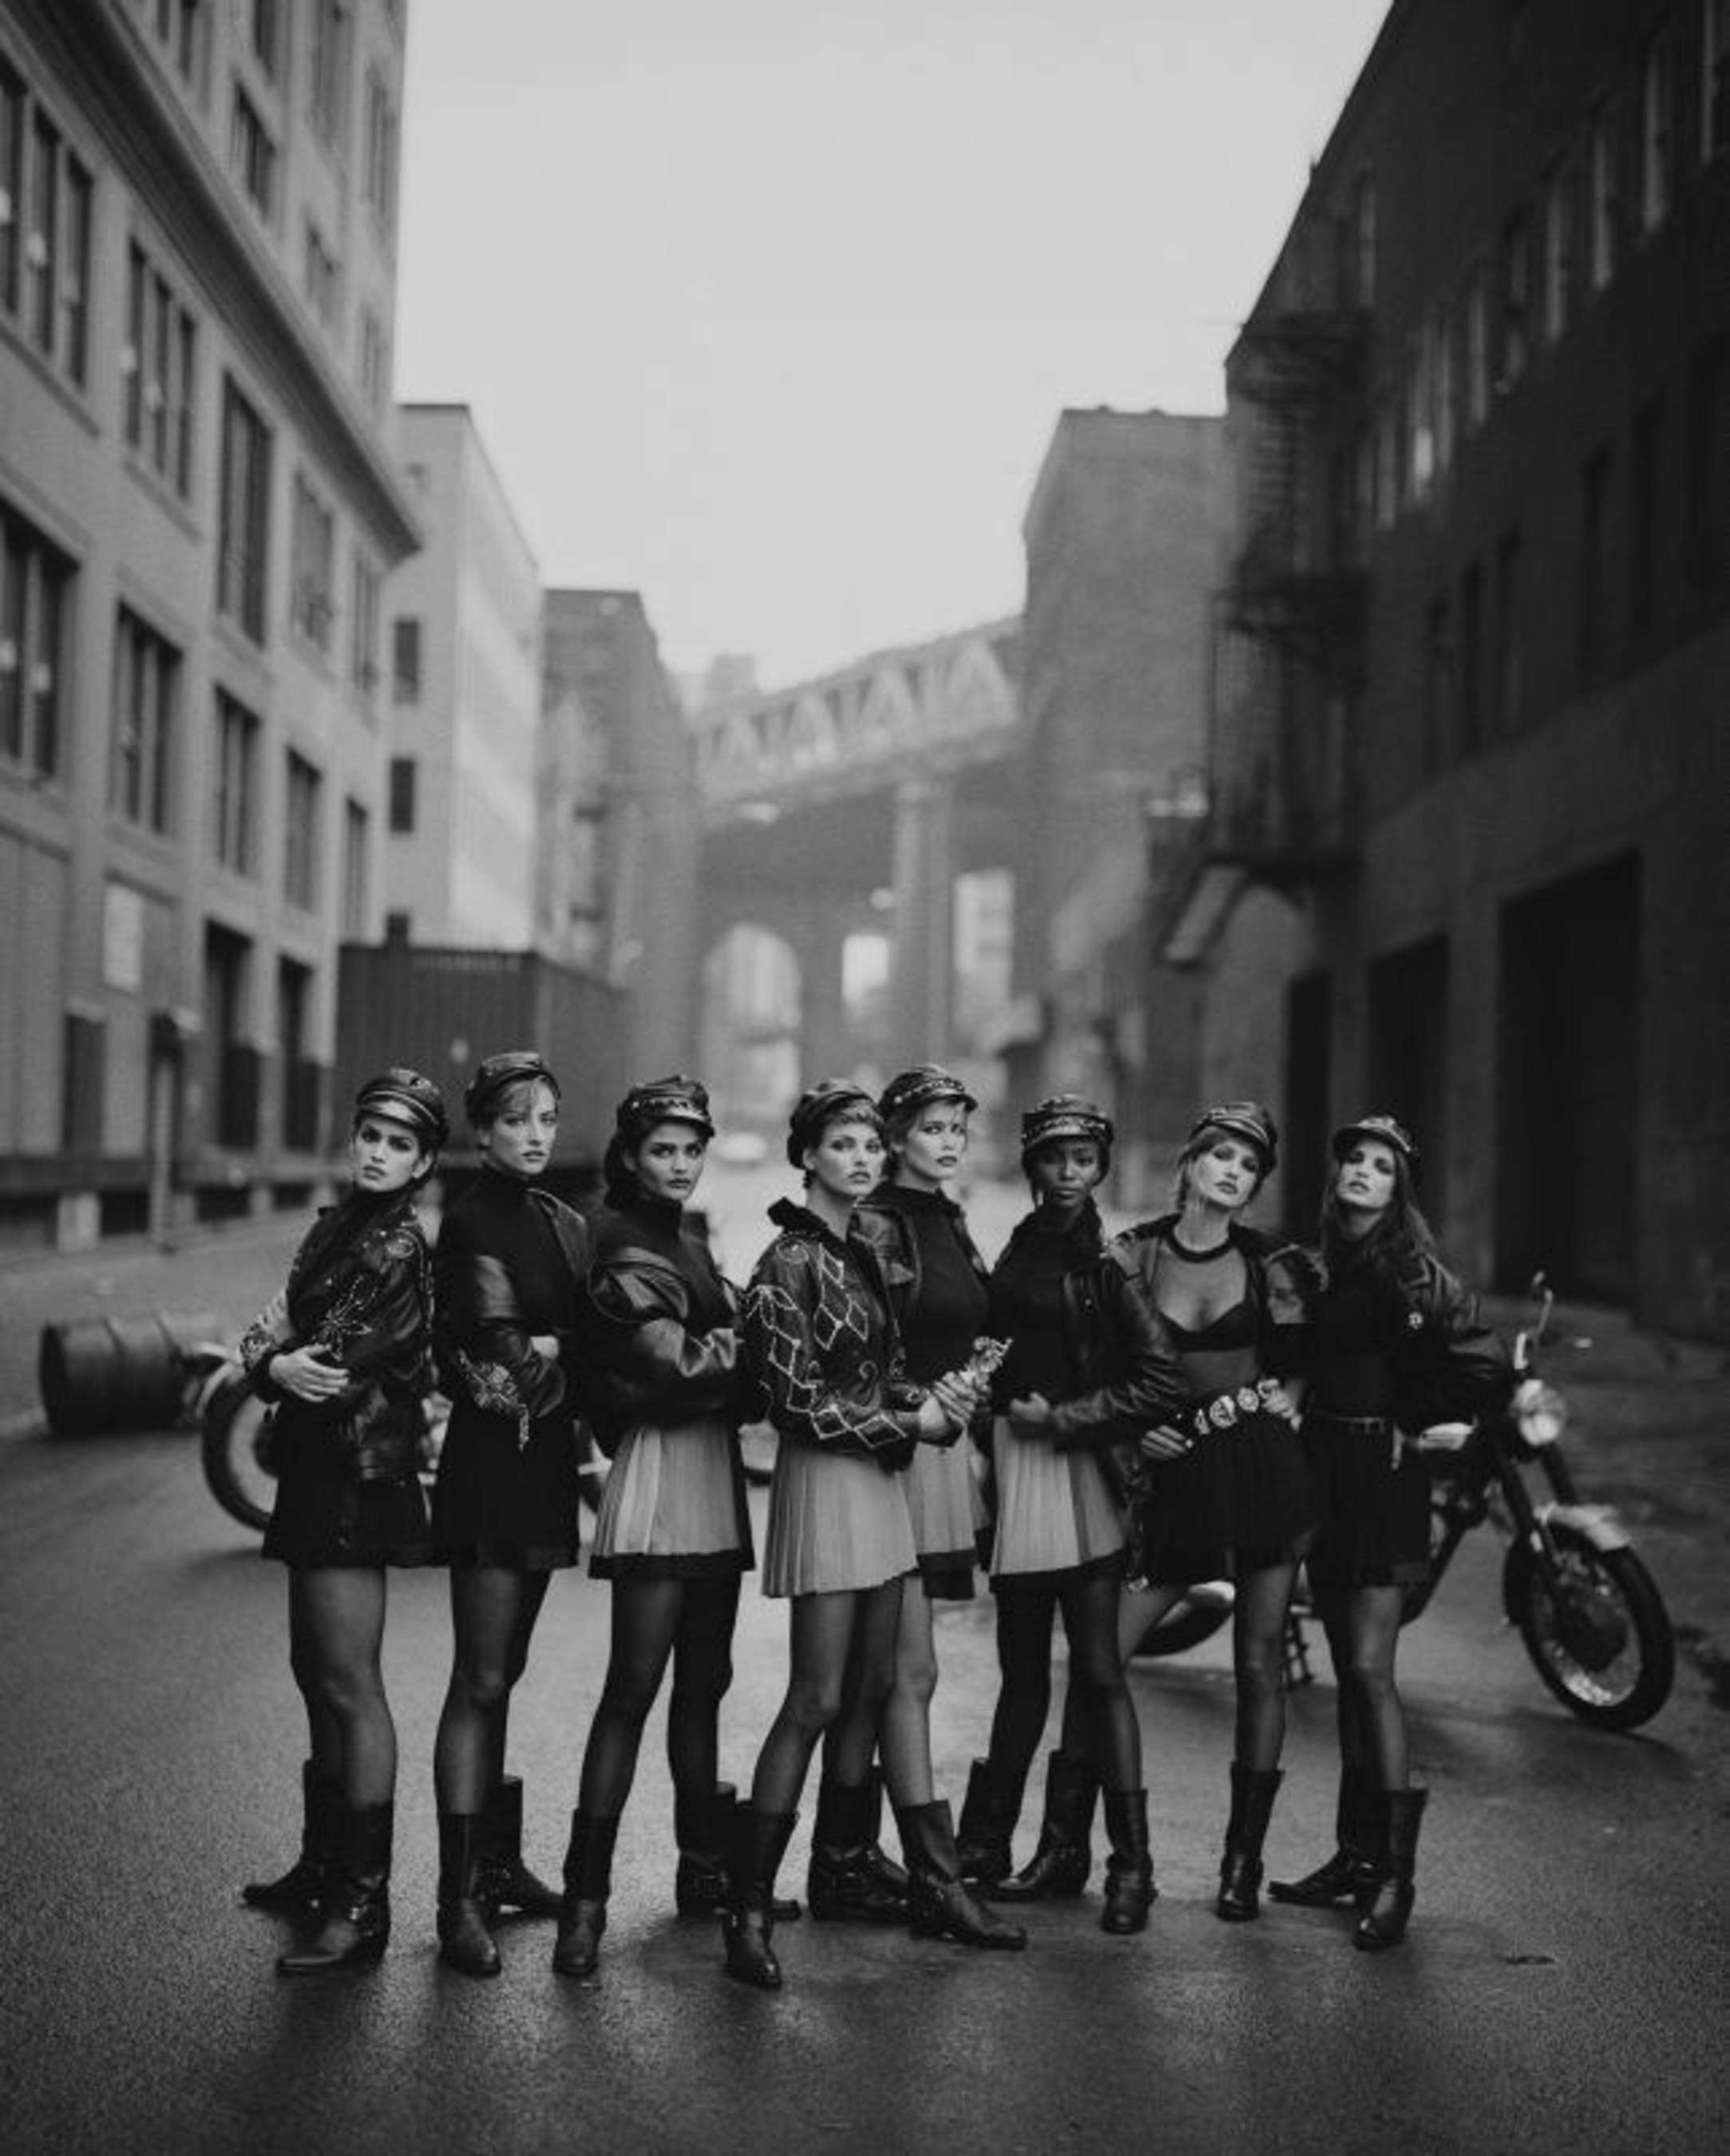 Peter Lindbergh. A Different History of Fashion